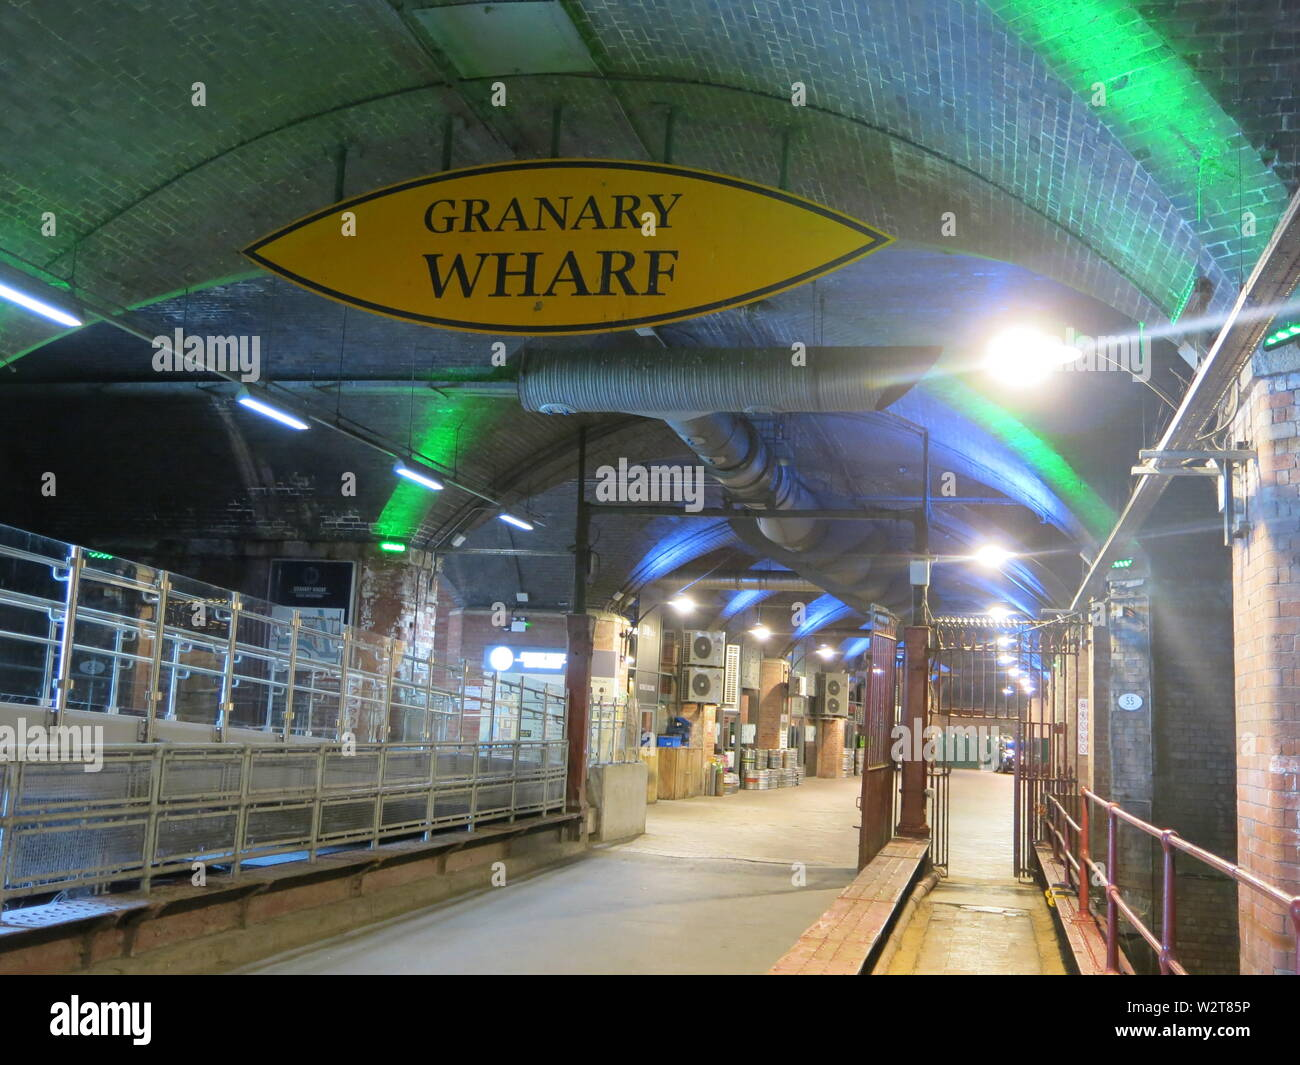 Photo of Granary Wharf, now a redeveloped shopping centre with restaurants and businesses below Leeds Central Railway Station Stock Photo